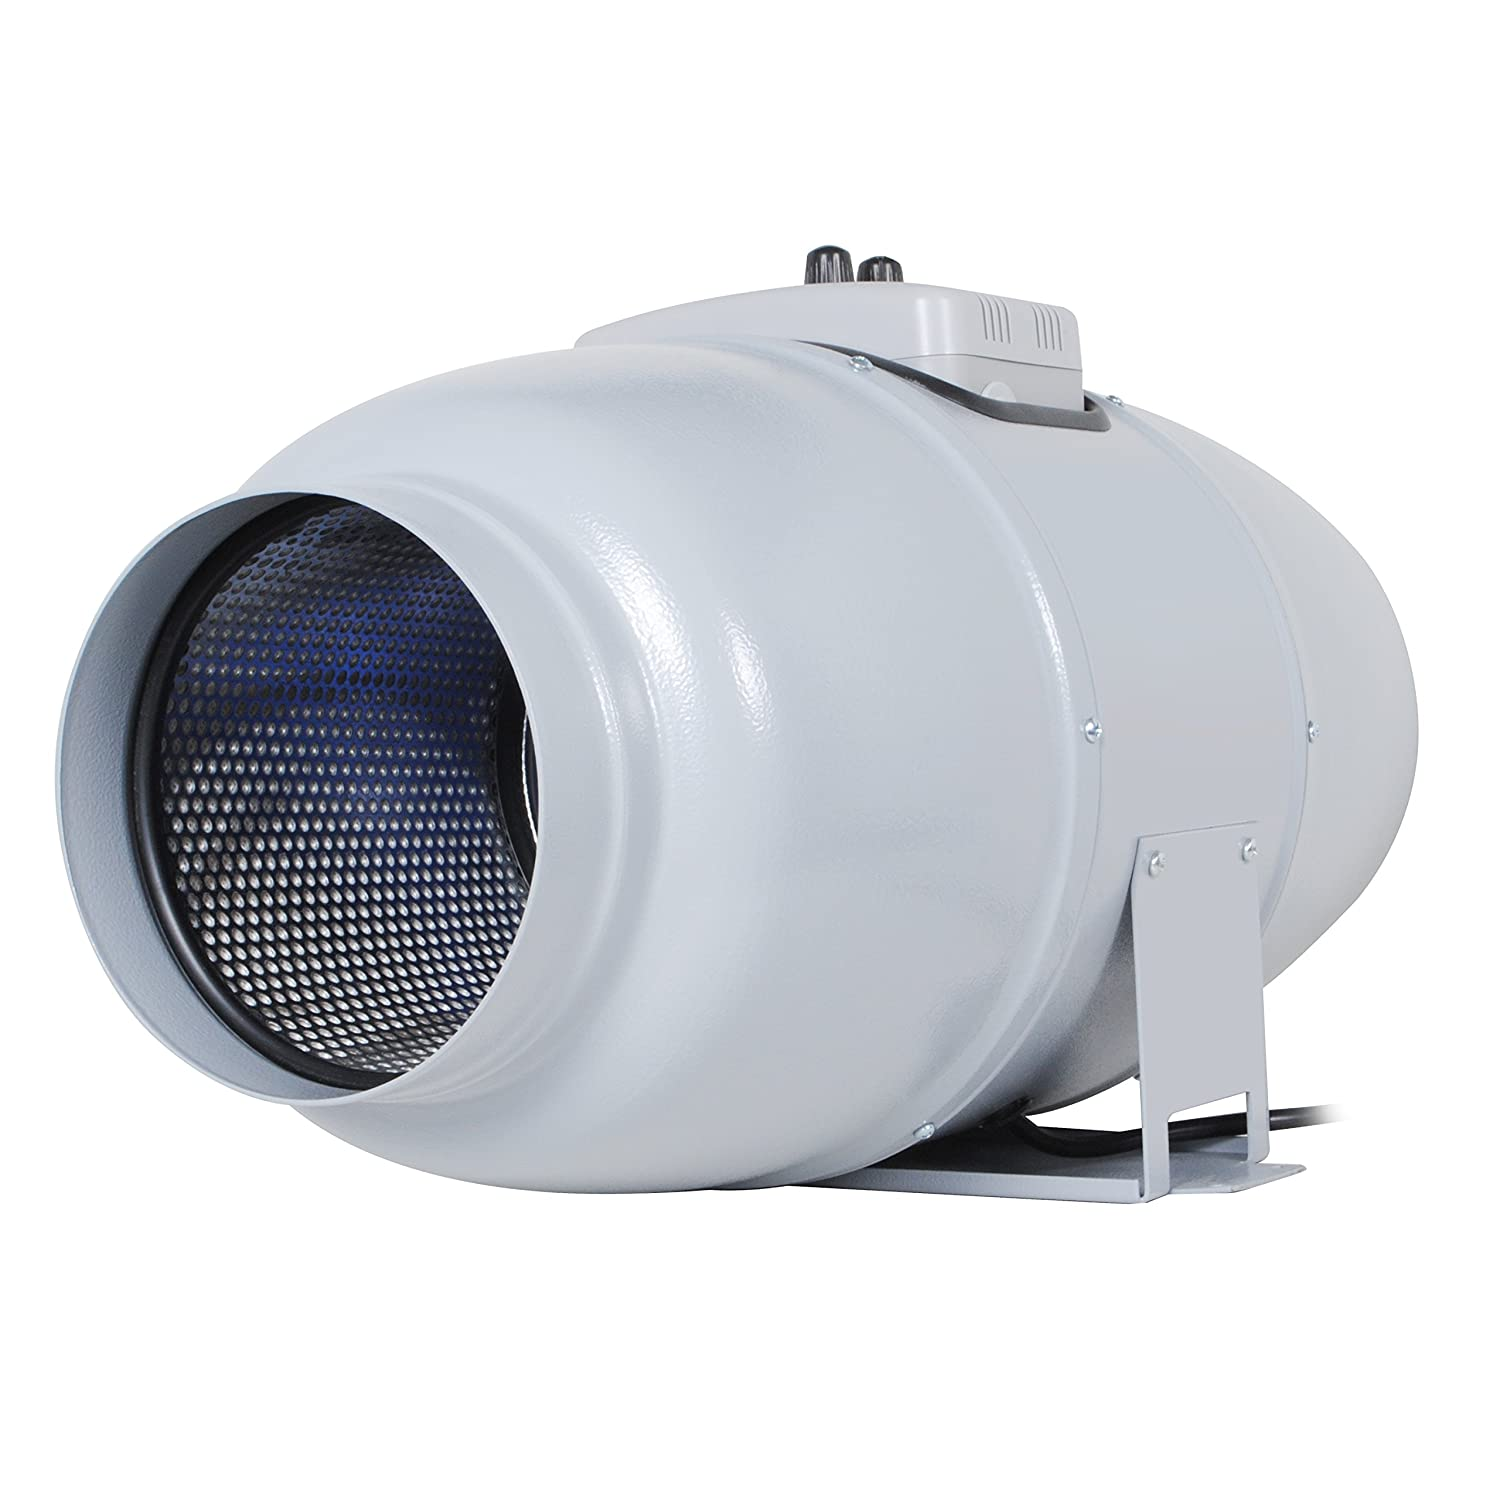 "Inline Fan ""Silent Series"" For 6 Inch Ducts 327 CFM 67W Ultra Quiet Sound lnsulated HVAC Vent and Grow Room Exhaust Blower with Speed Controller and Autopilot 33 dBA 13.89 Lb"